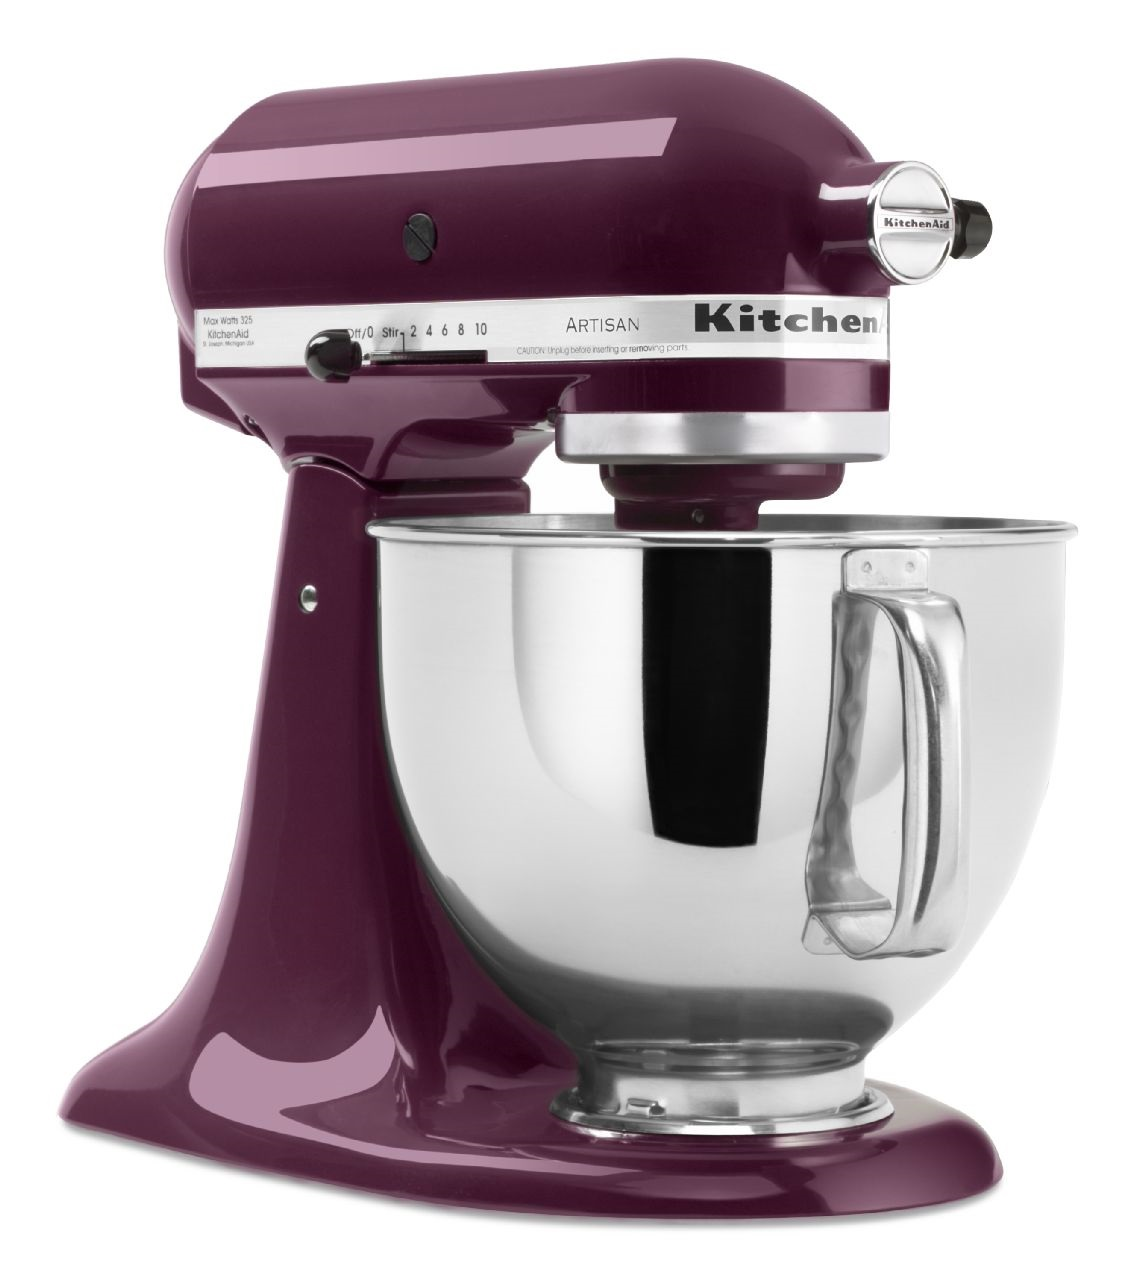 KitchenAid-Refurbished-Artisan-Series-5-Quart-Tilt-Head-Stand-Mixer-RRK150 thumbnail 17